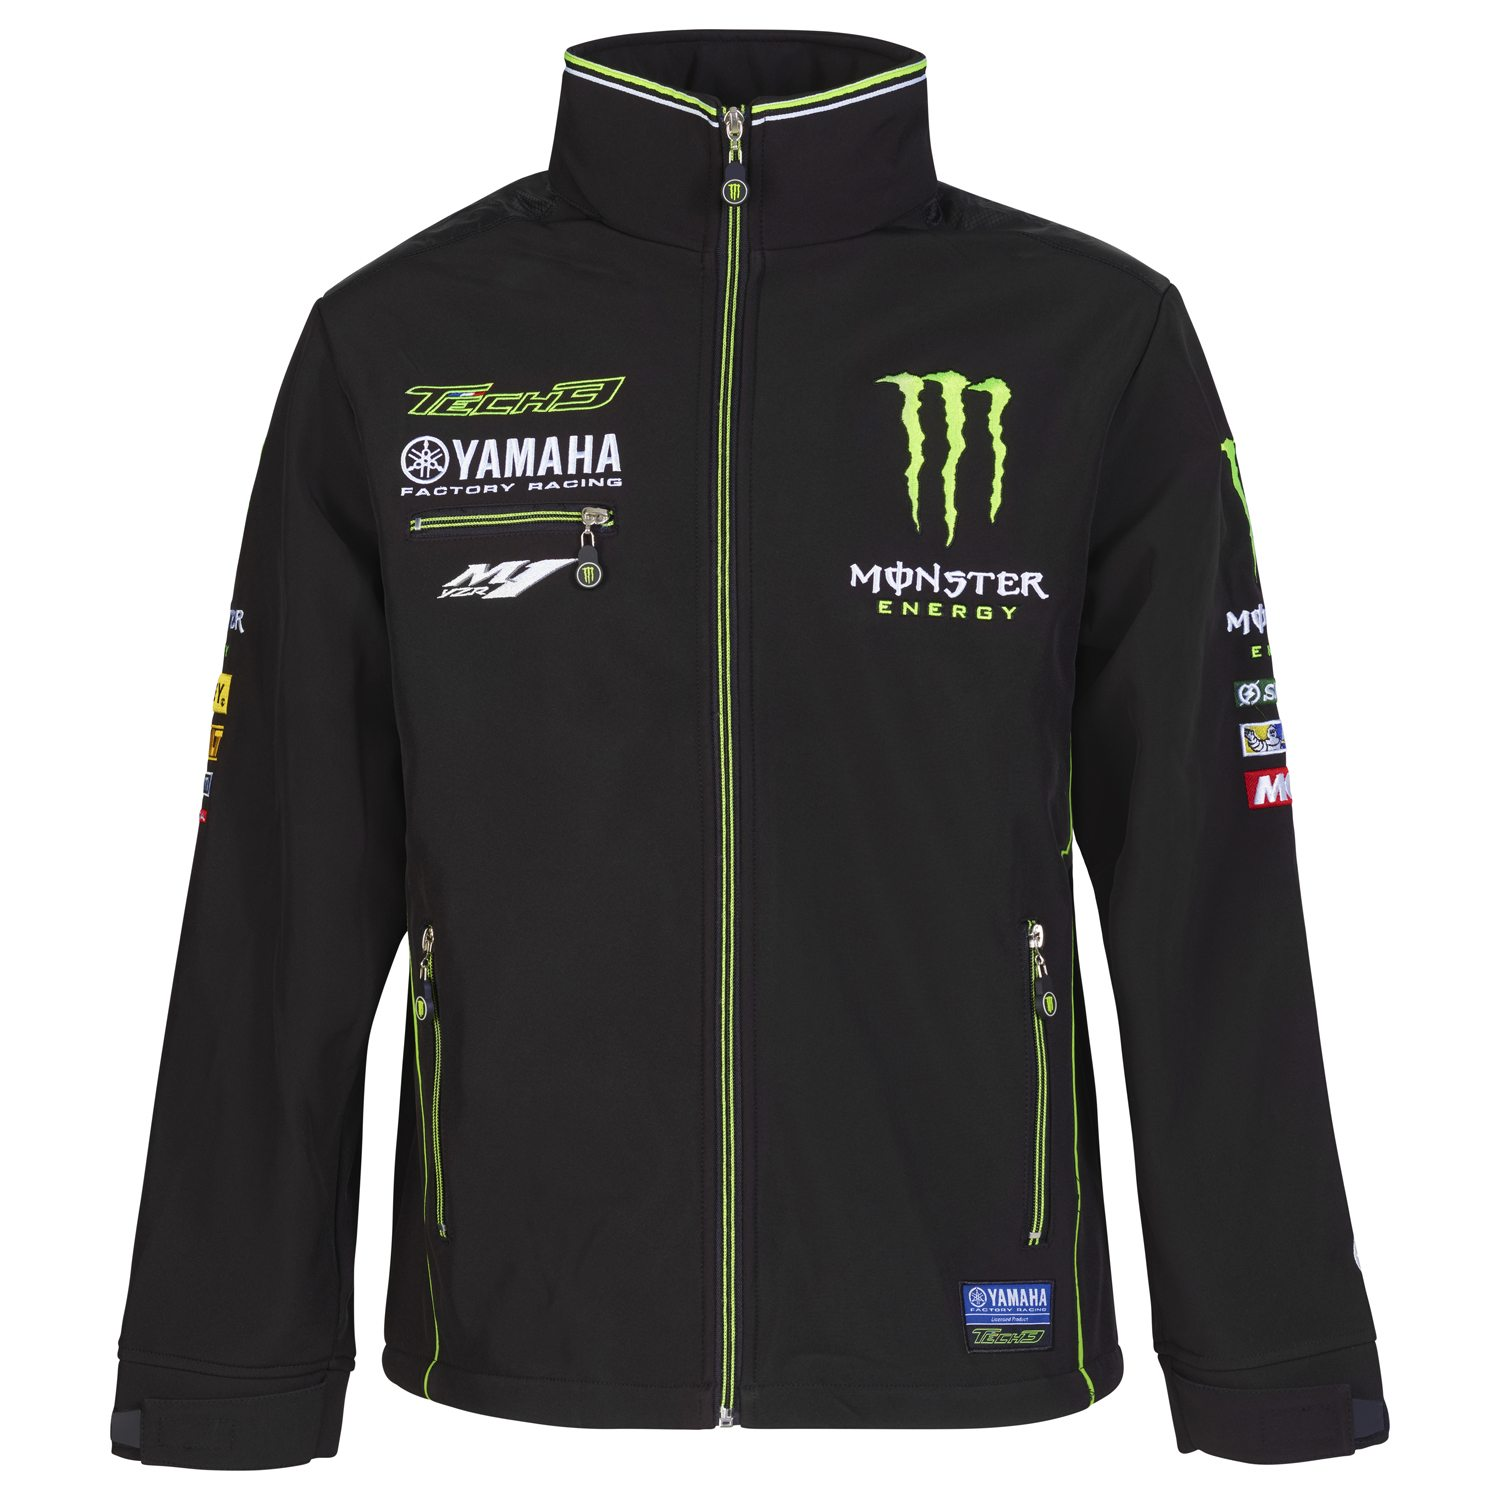 GIACCA SOFT SHELL YAMAHA M1 MONSTER ENERGY TECH 3 MOTOGP 2017 - 2018 TAGLIA XL NEW